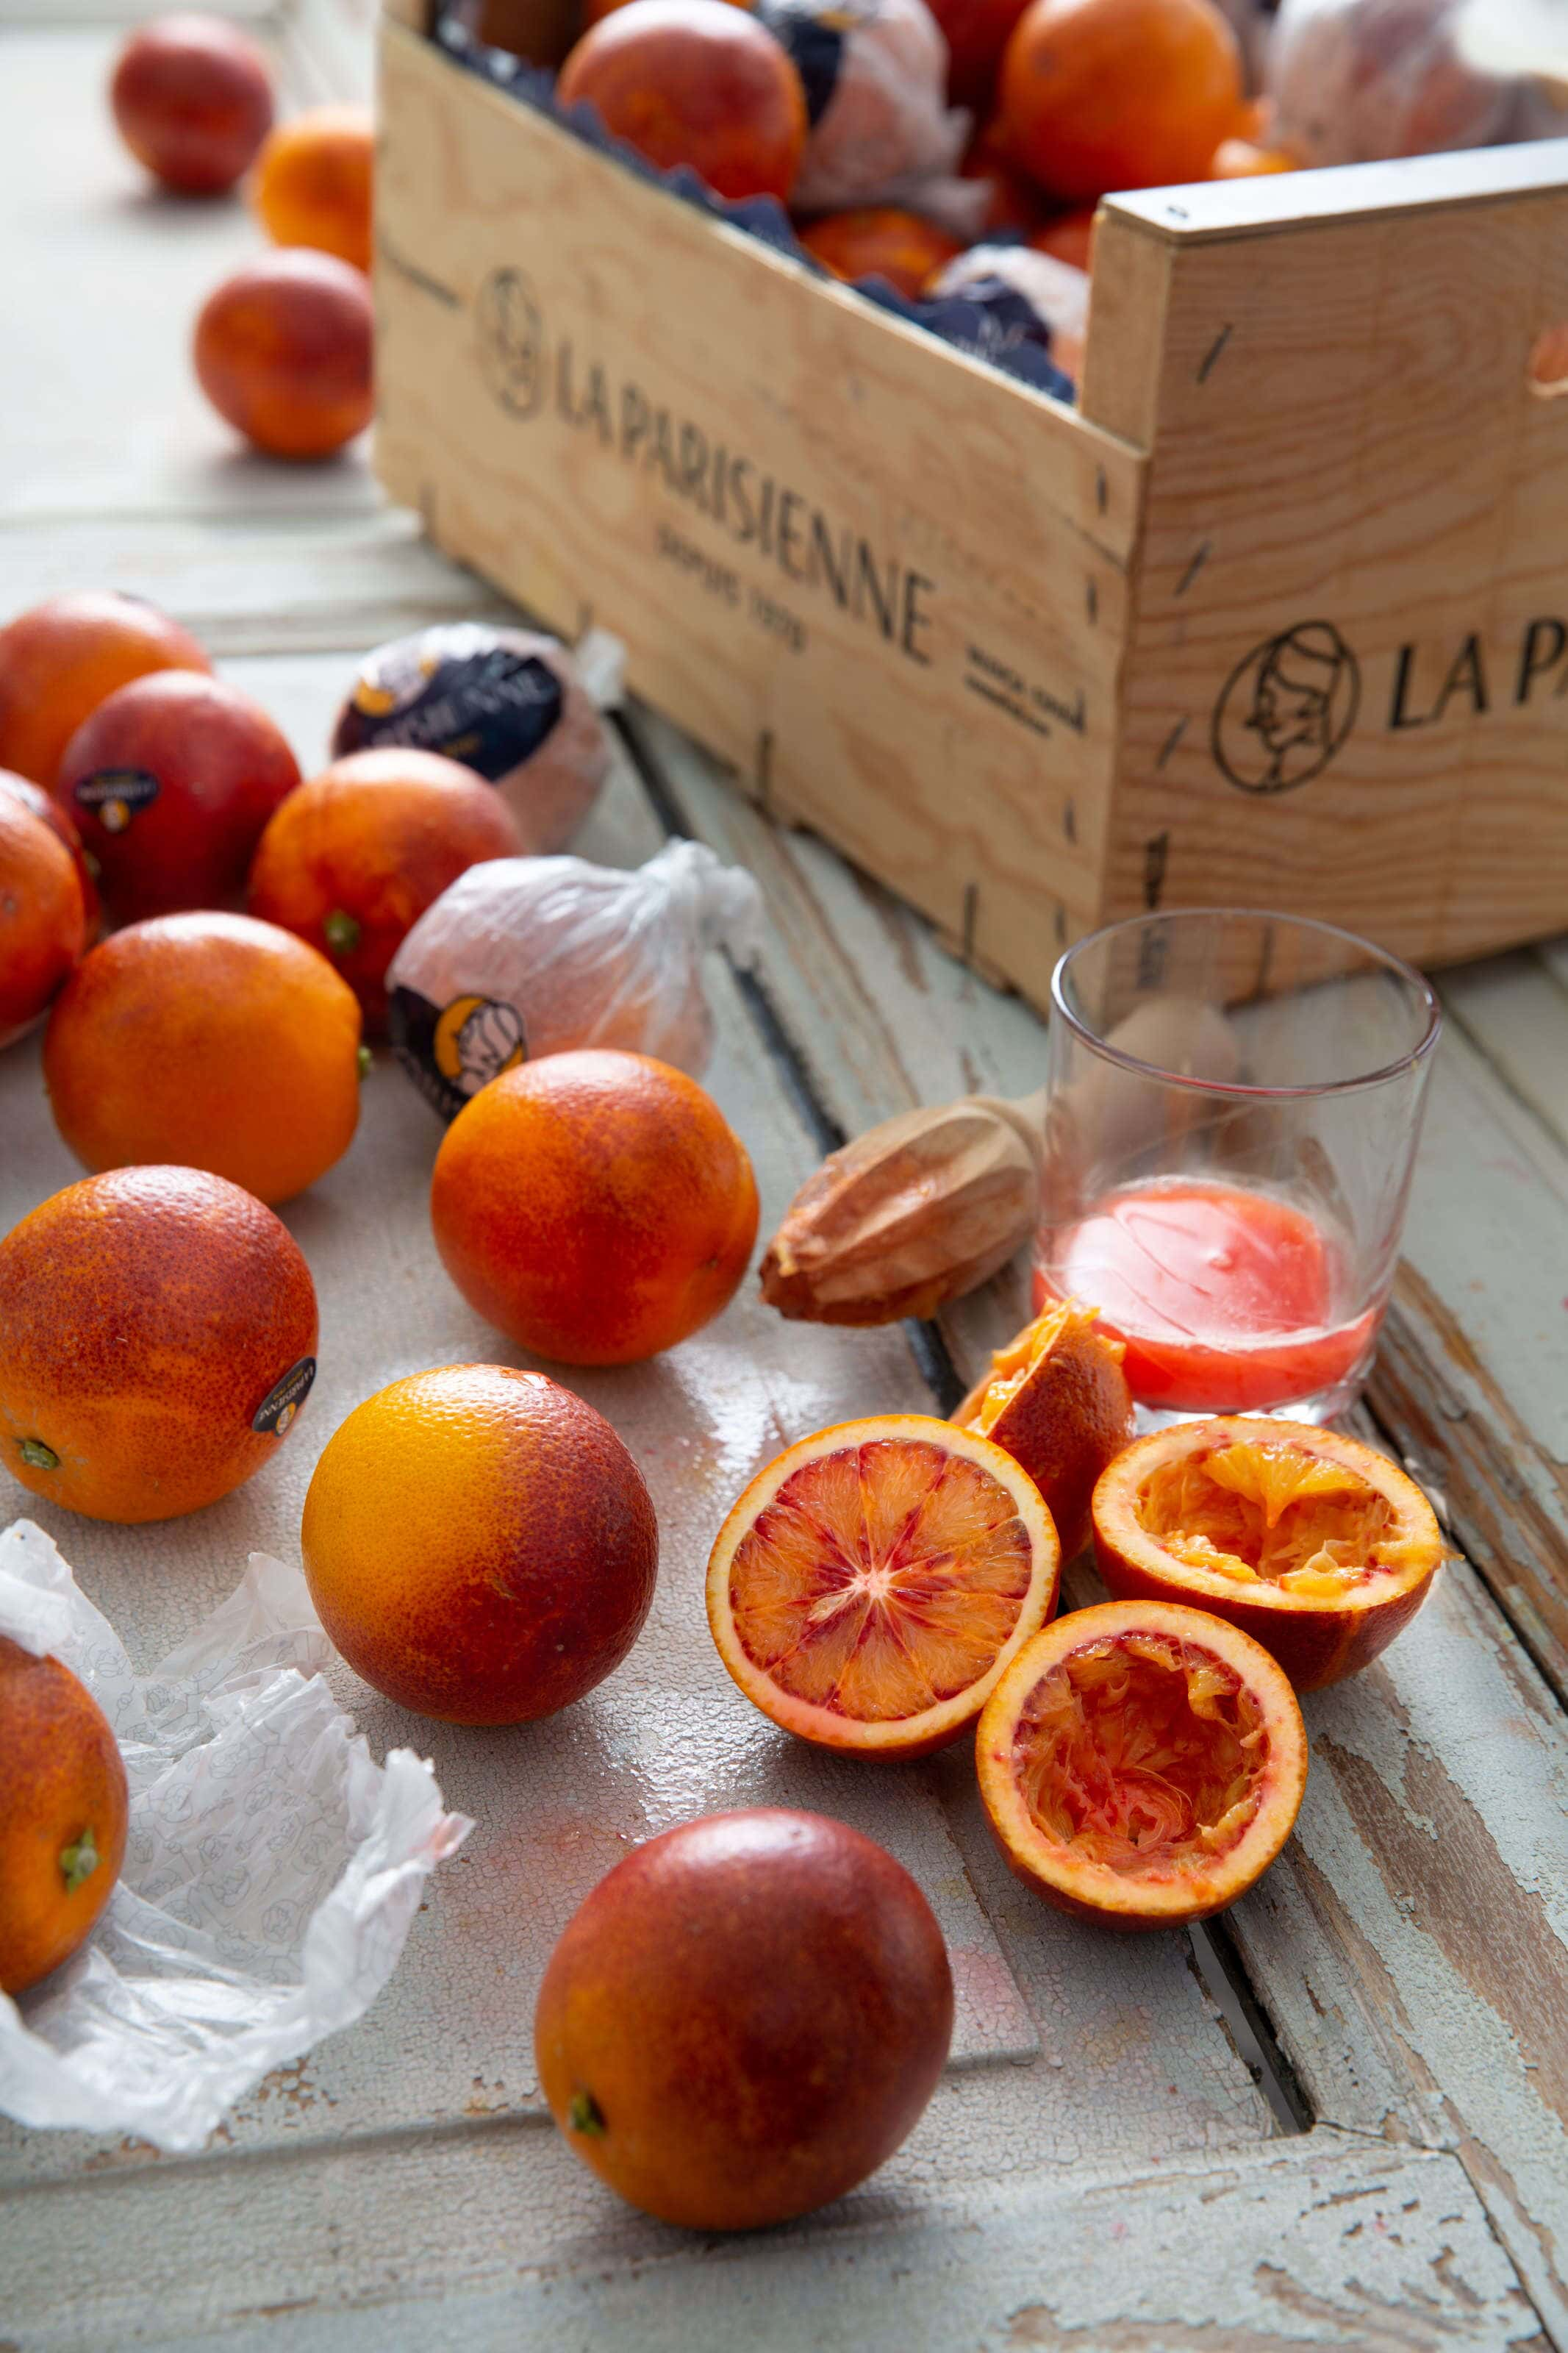 Blood oranges sliced opened and juiced and some in a box.